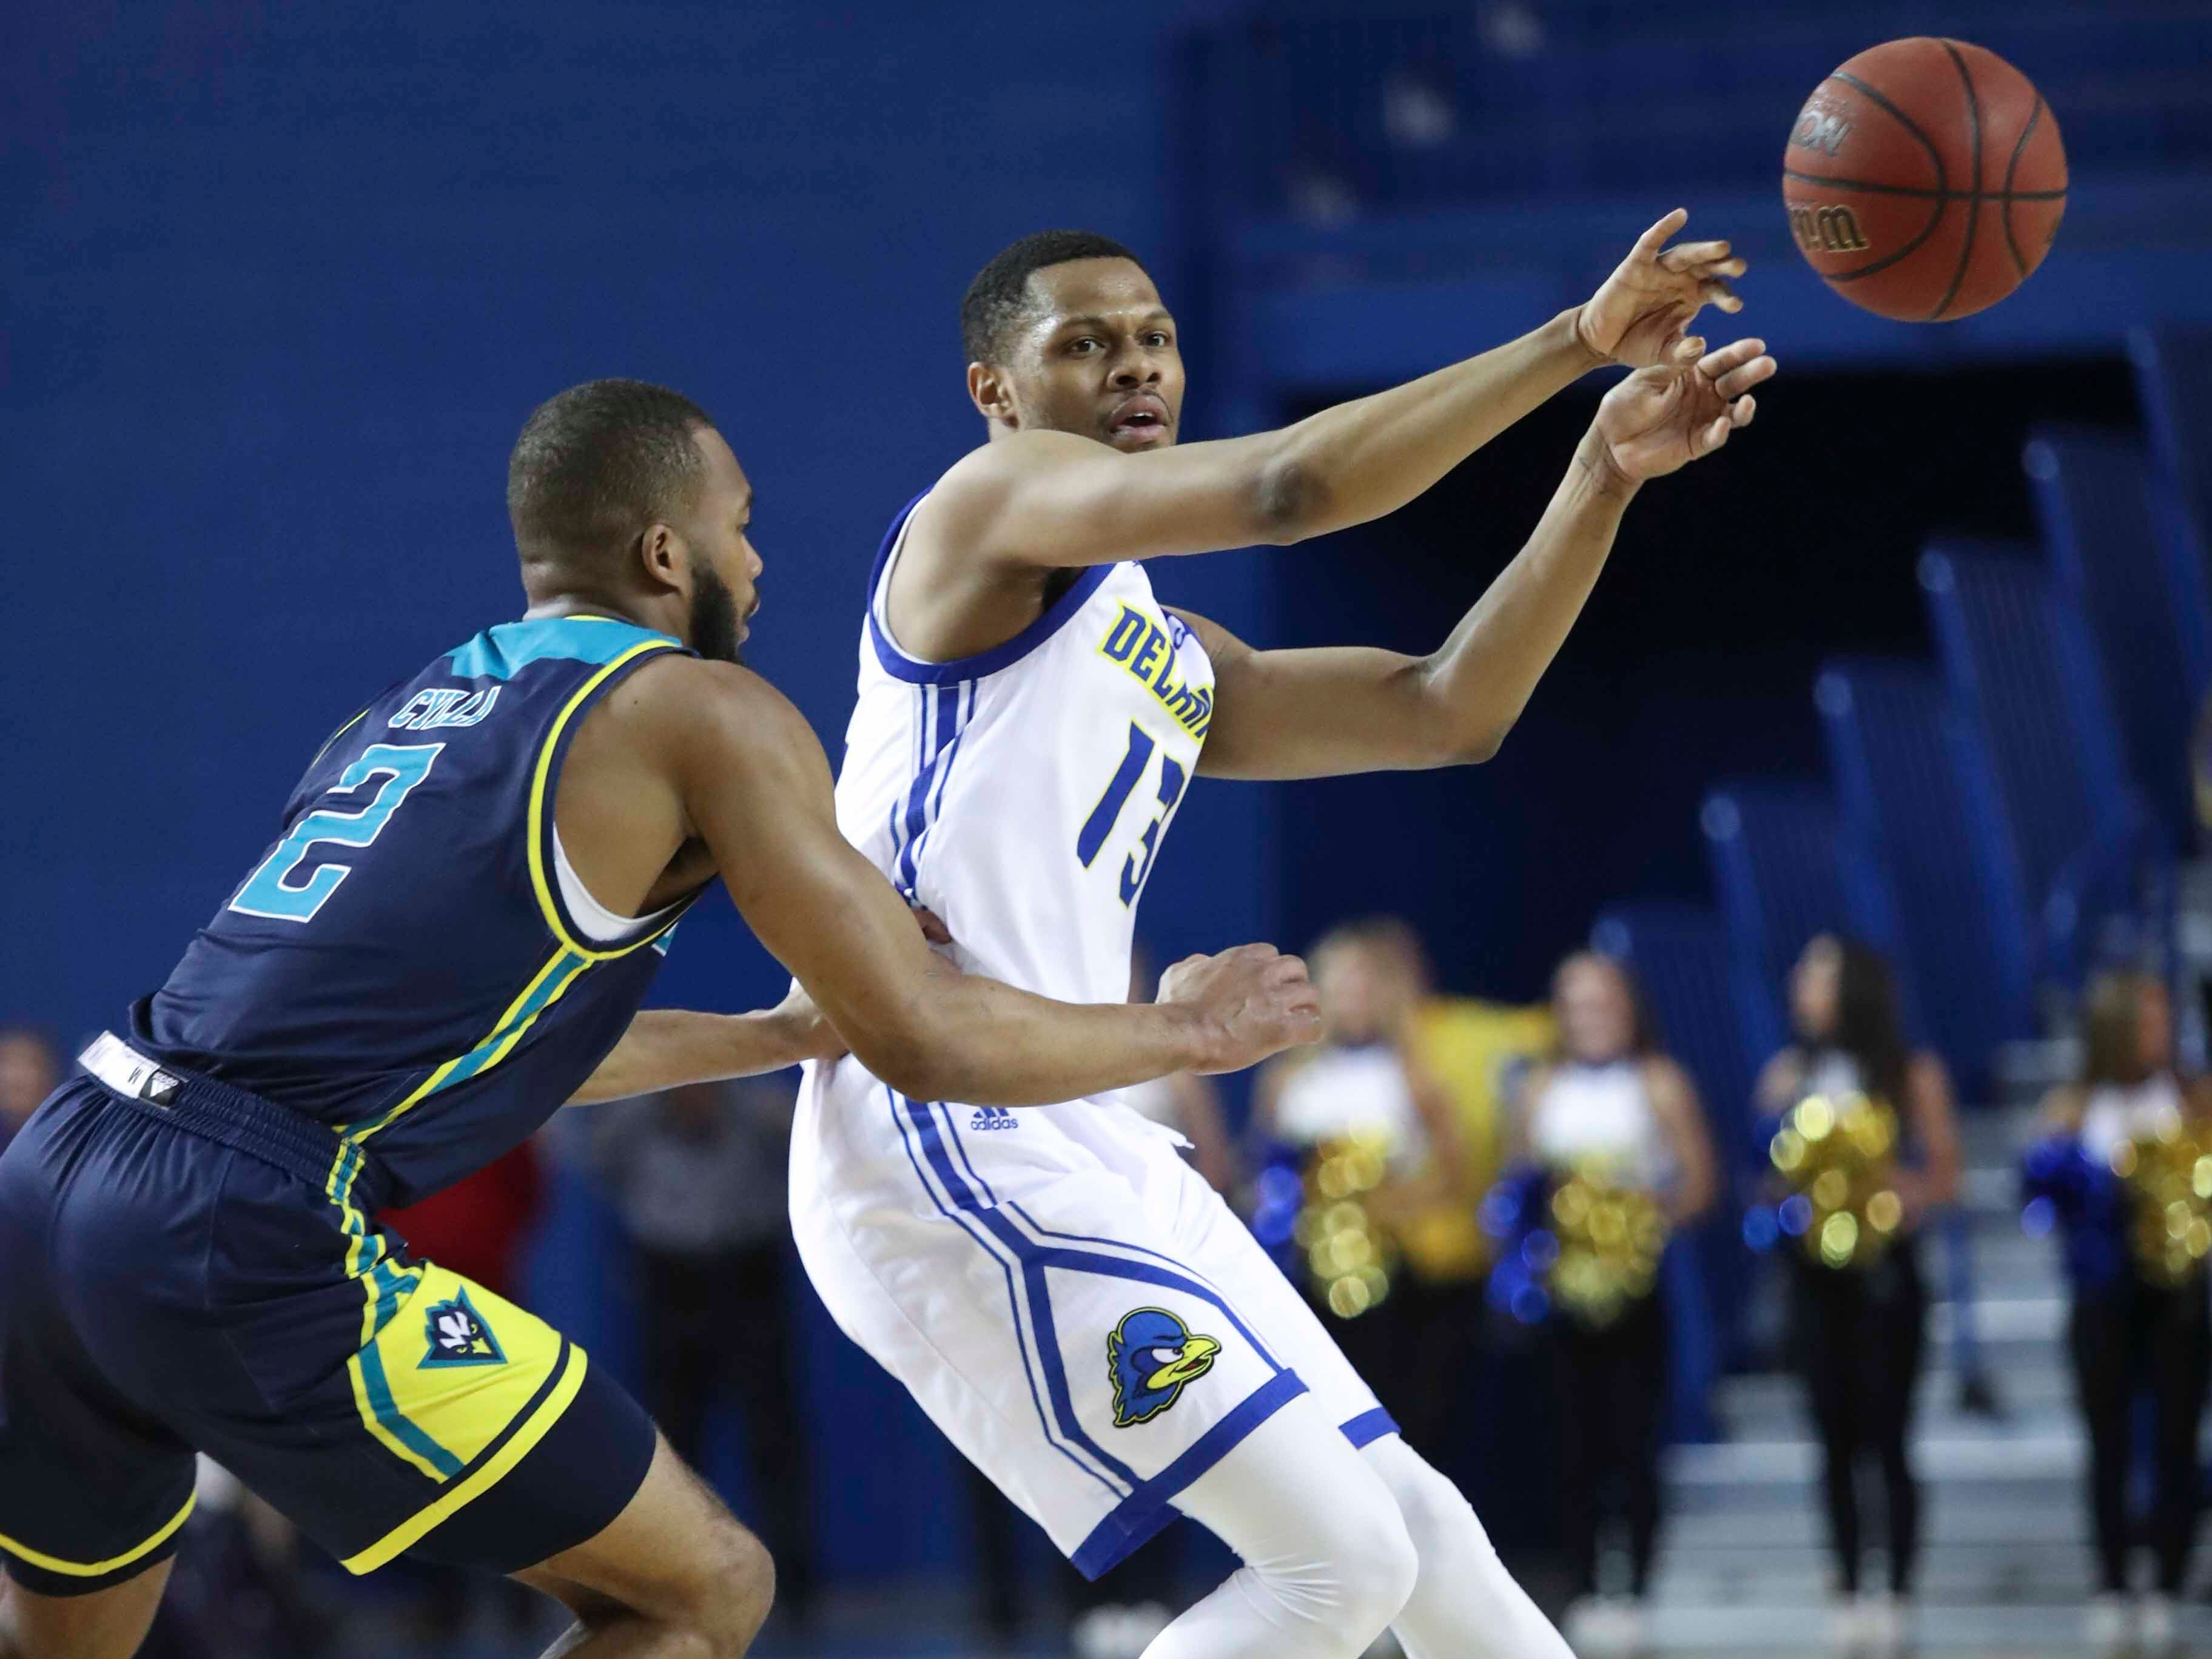 Delaware's Ryan Johnson throws a pass away from UNC-Wilmington's Jeantal Cylla in the second half of Delaware's 70-66 win at the Bob Carpenter Center Saturday.